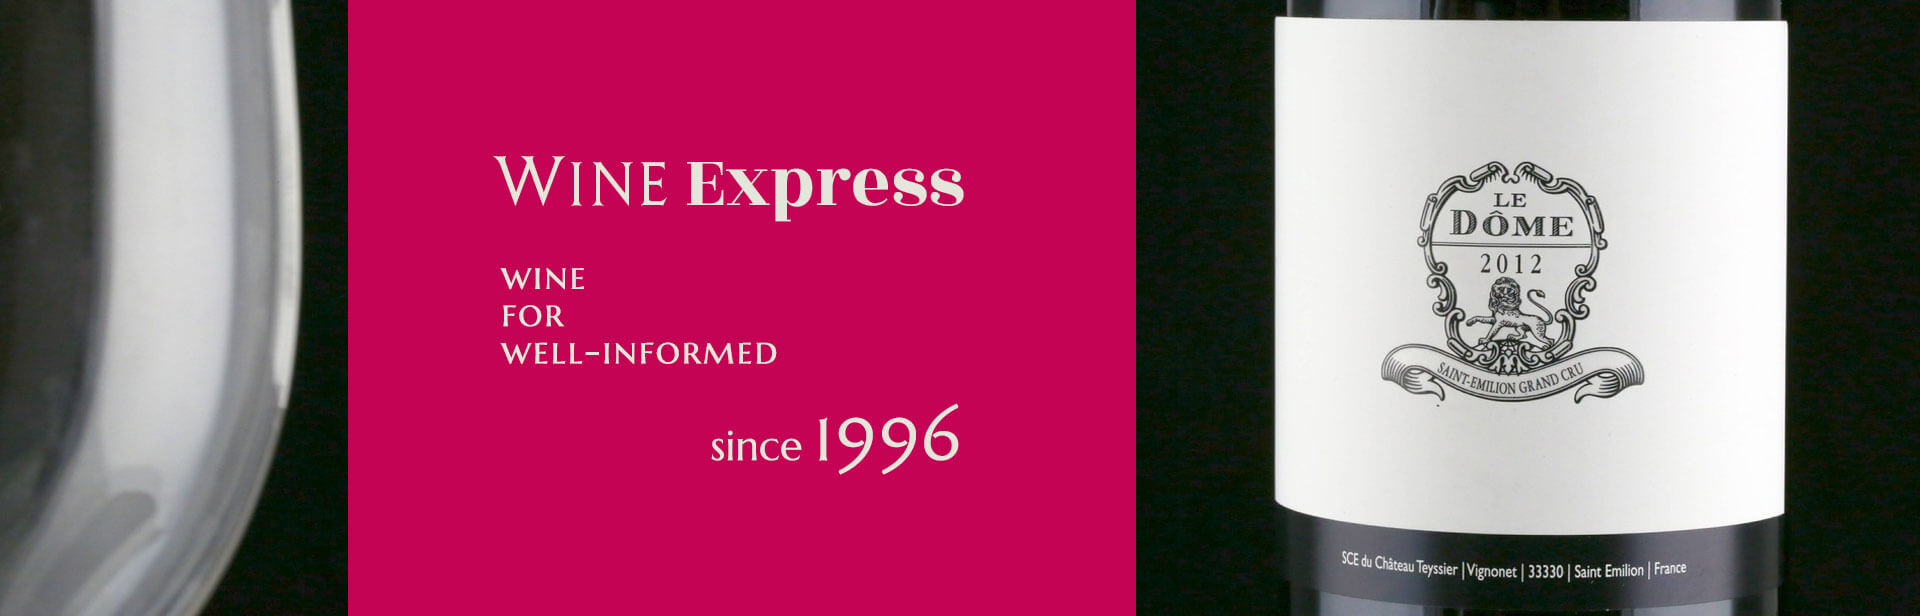 About Wine Express